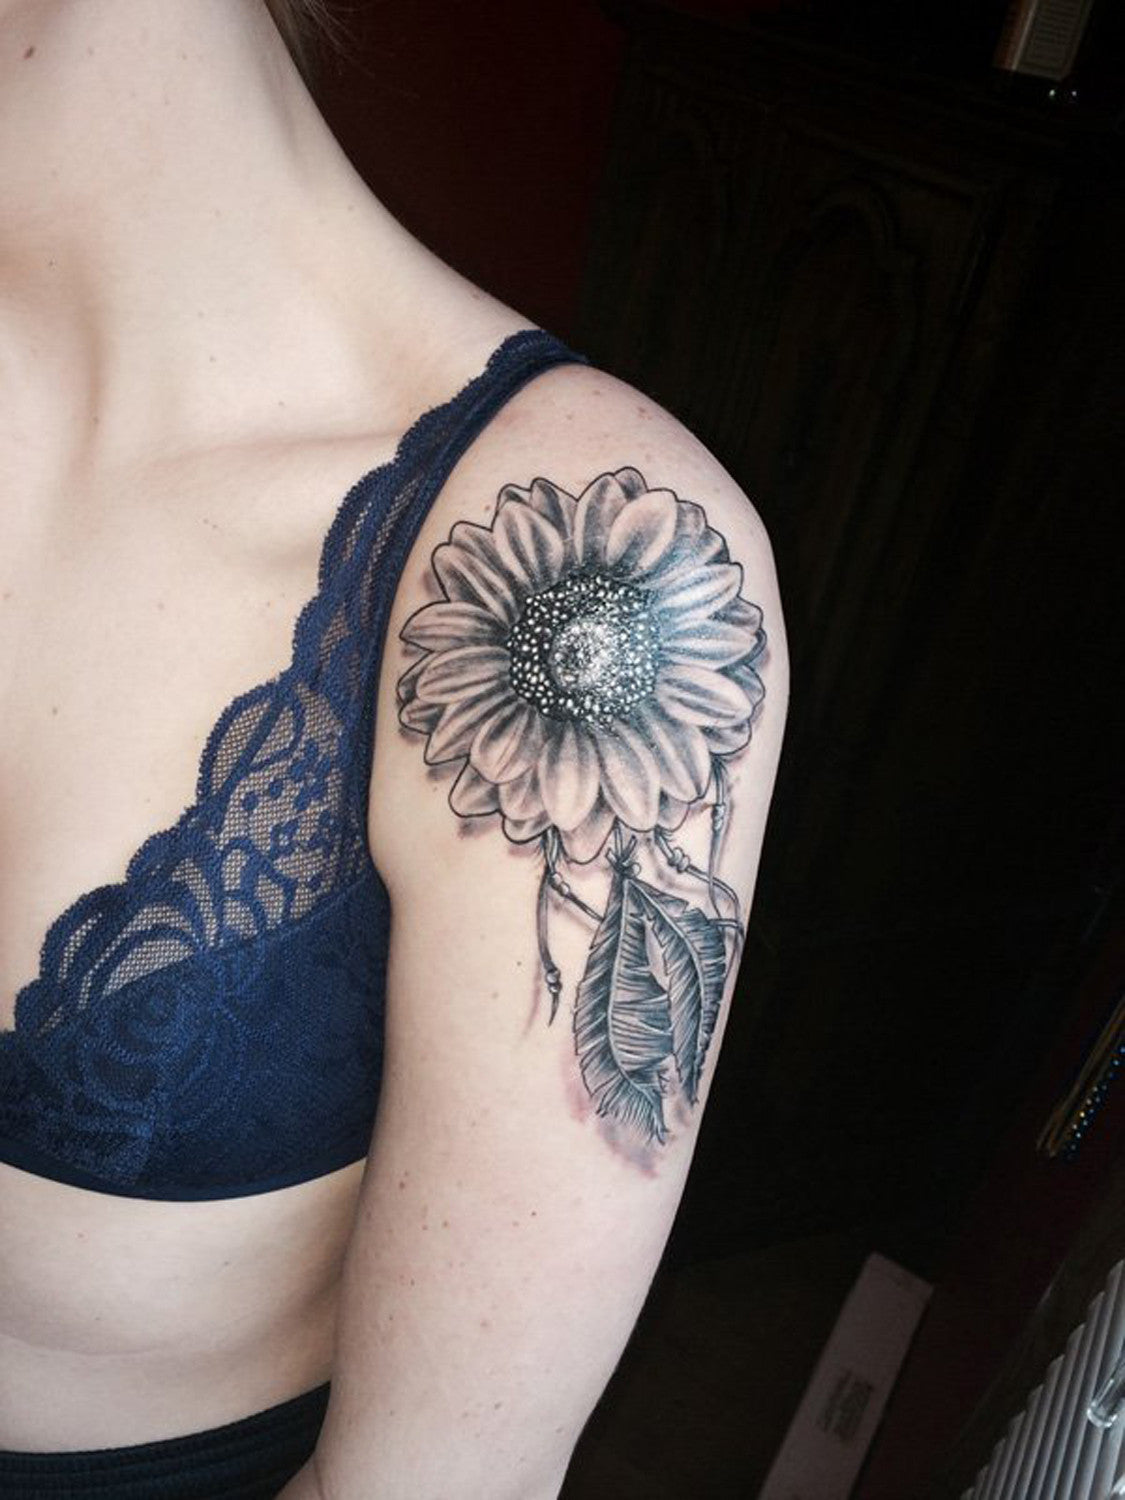 Traditional Simple Full Sunflower Shoulder Tattoo Ideas for Women at MyBodiArt.com